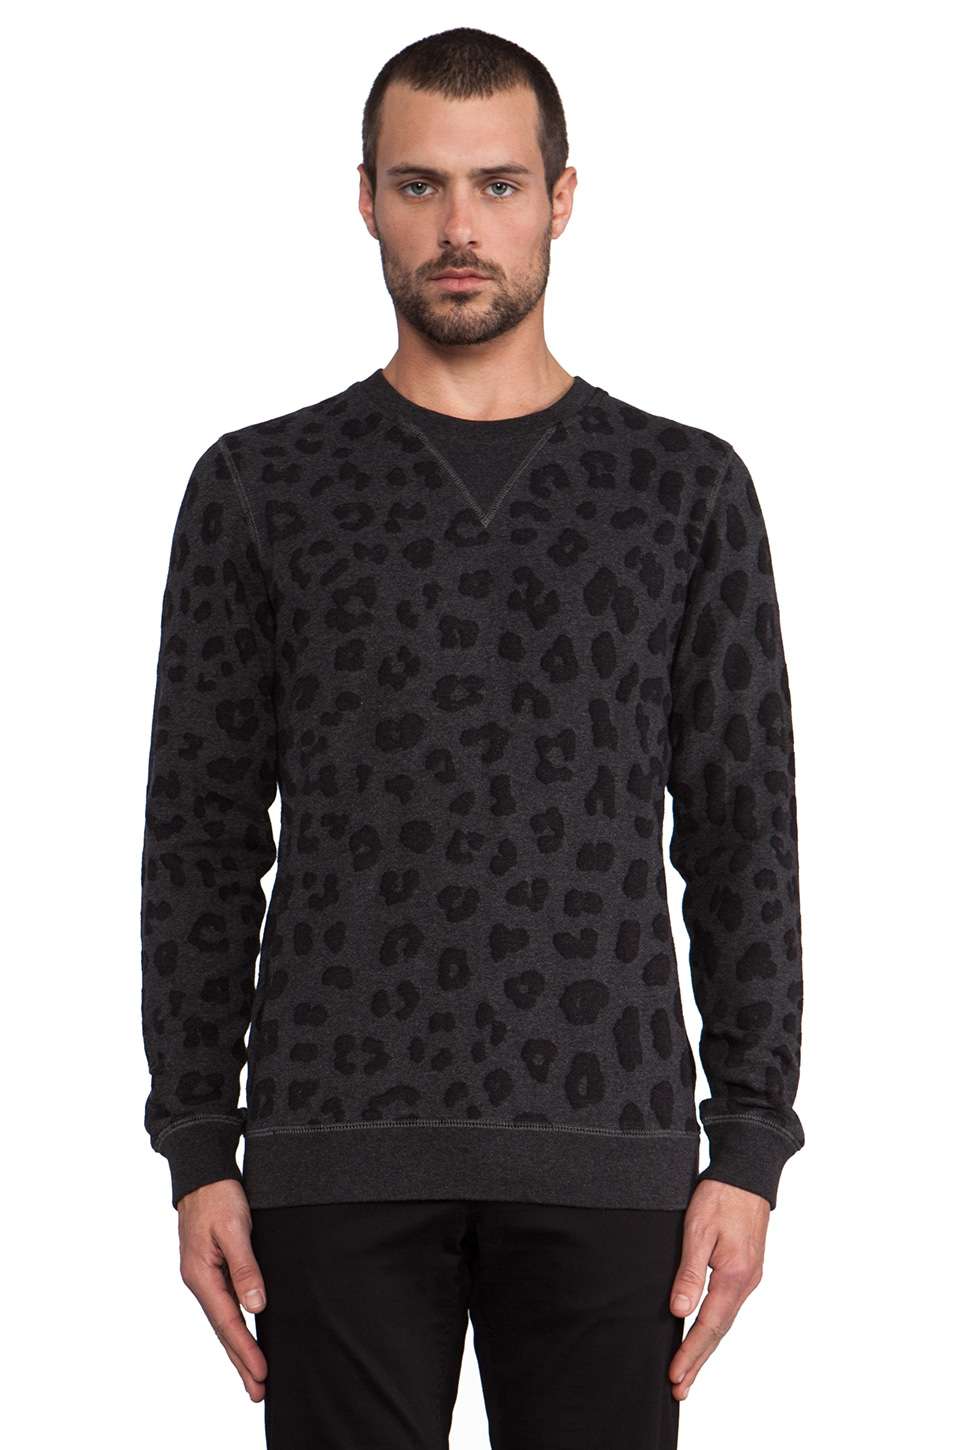 Marc by Marc Jacobs London Leopard Sweatshirt in Black Melange